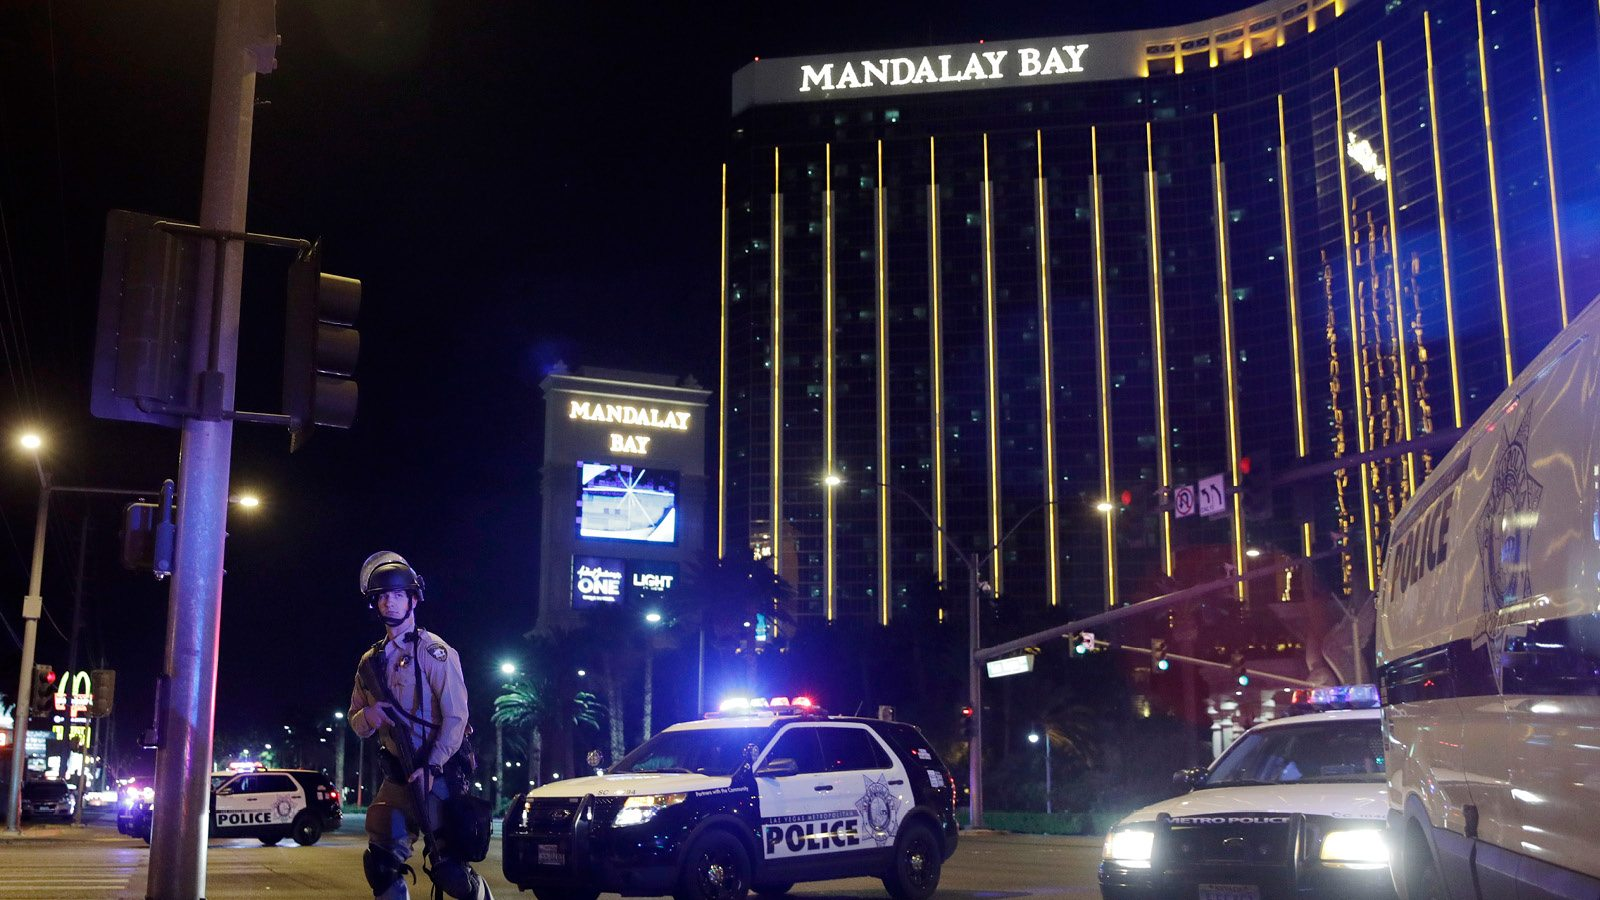 Las Vegas police October 1 shooting